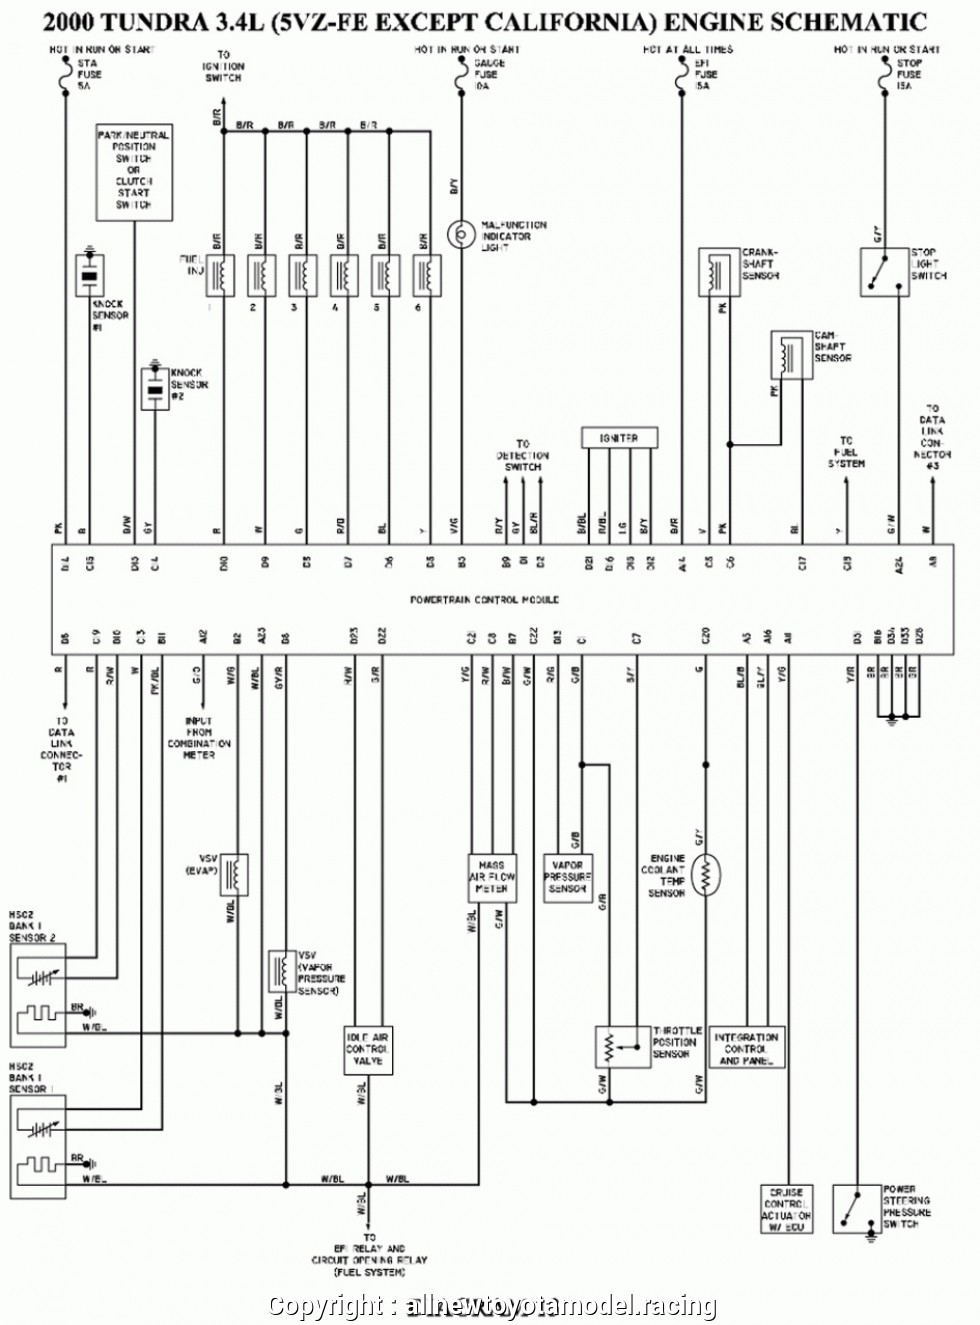 2000 Toyota Tundra Wiring Diagrams | Wiring Library - 2000 Toyota Tundra Trailer Wiring Diagram